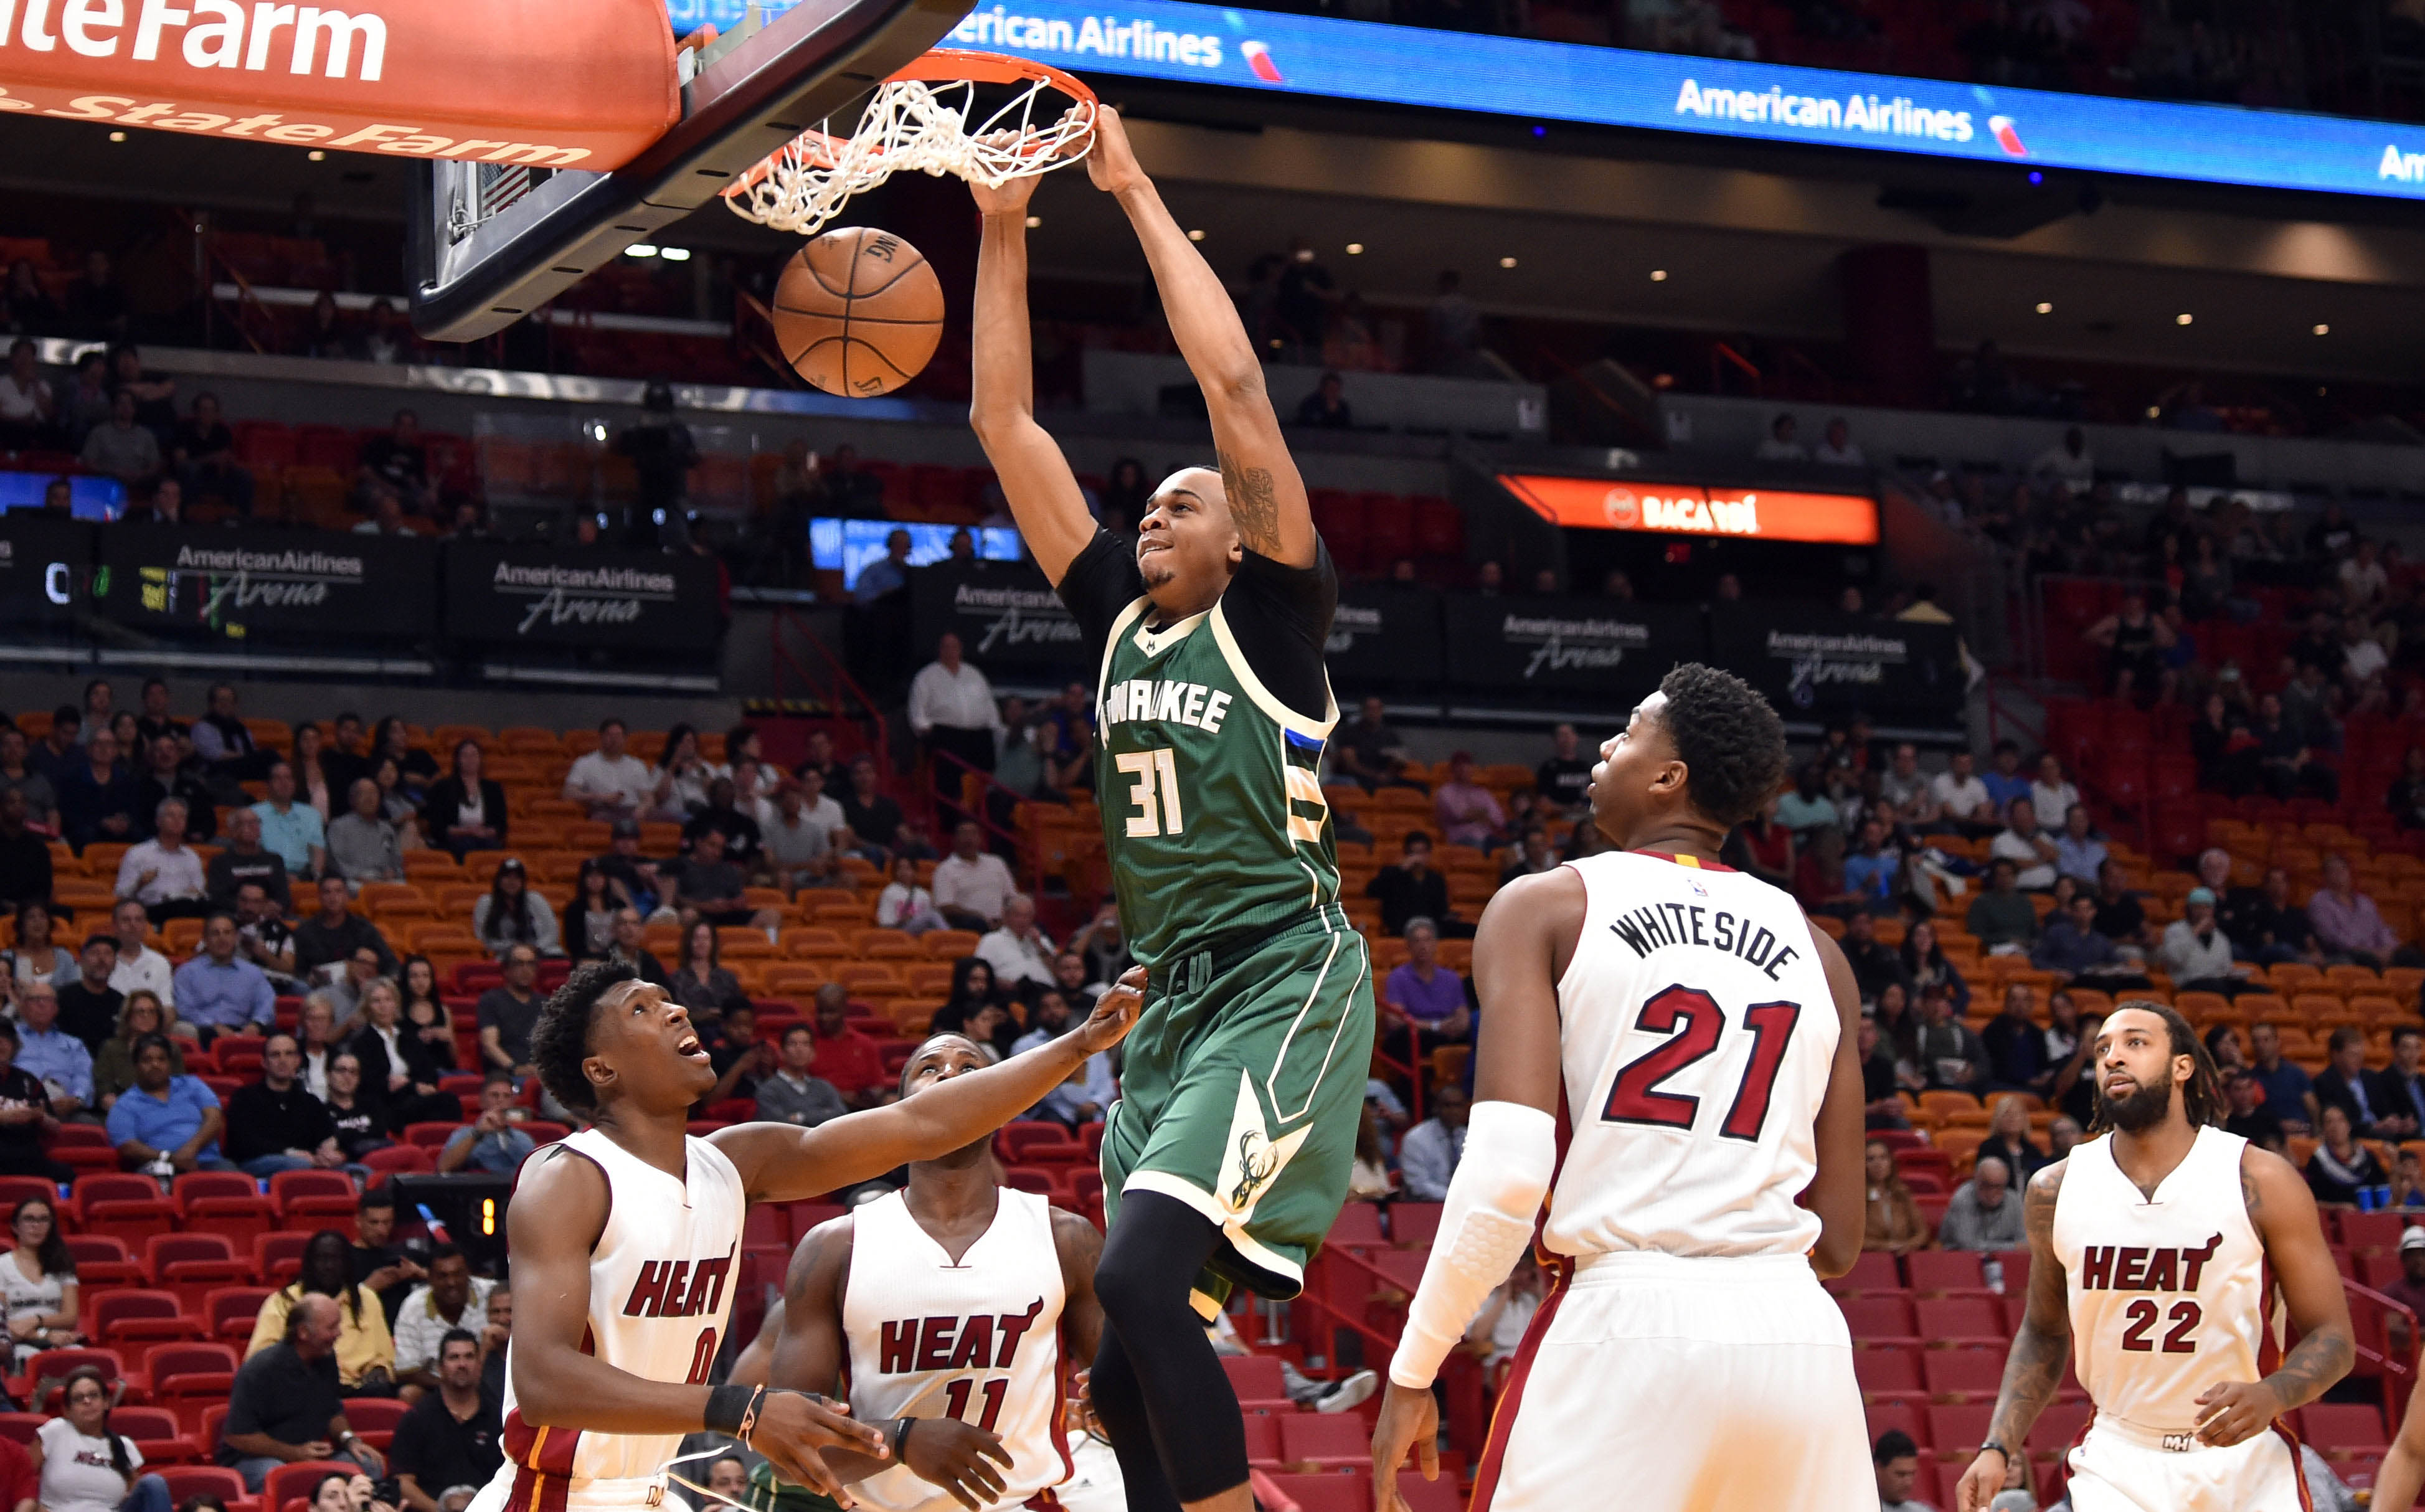 9687863-nba-milwaukee-bucks-at-miami-heat